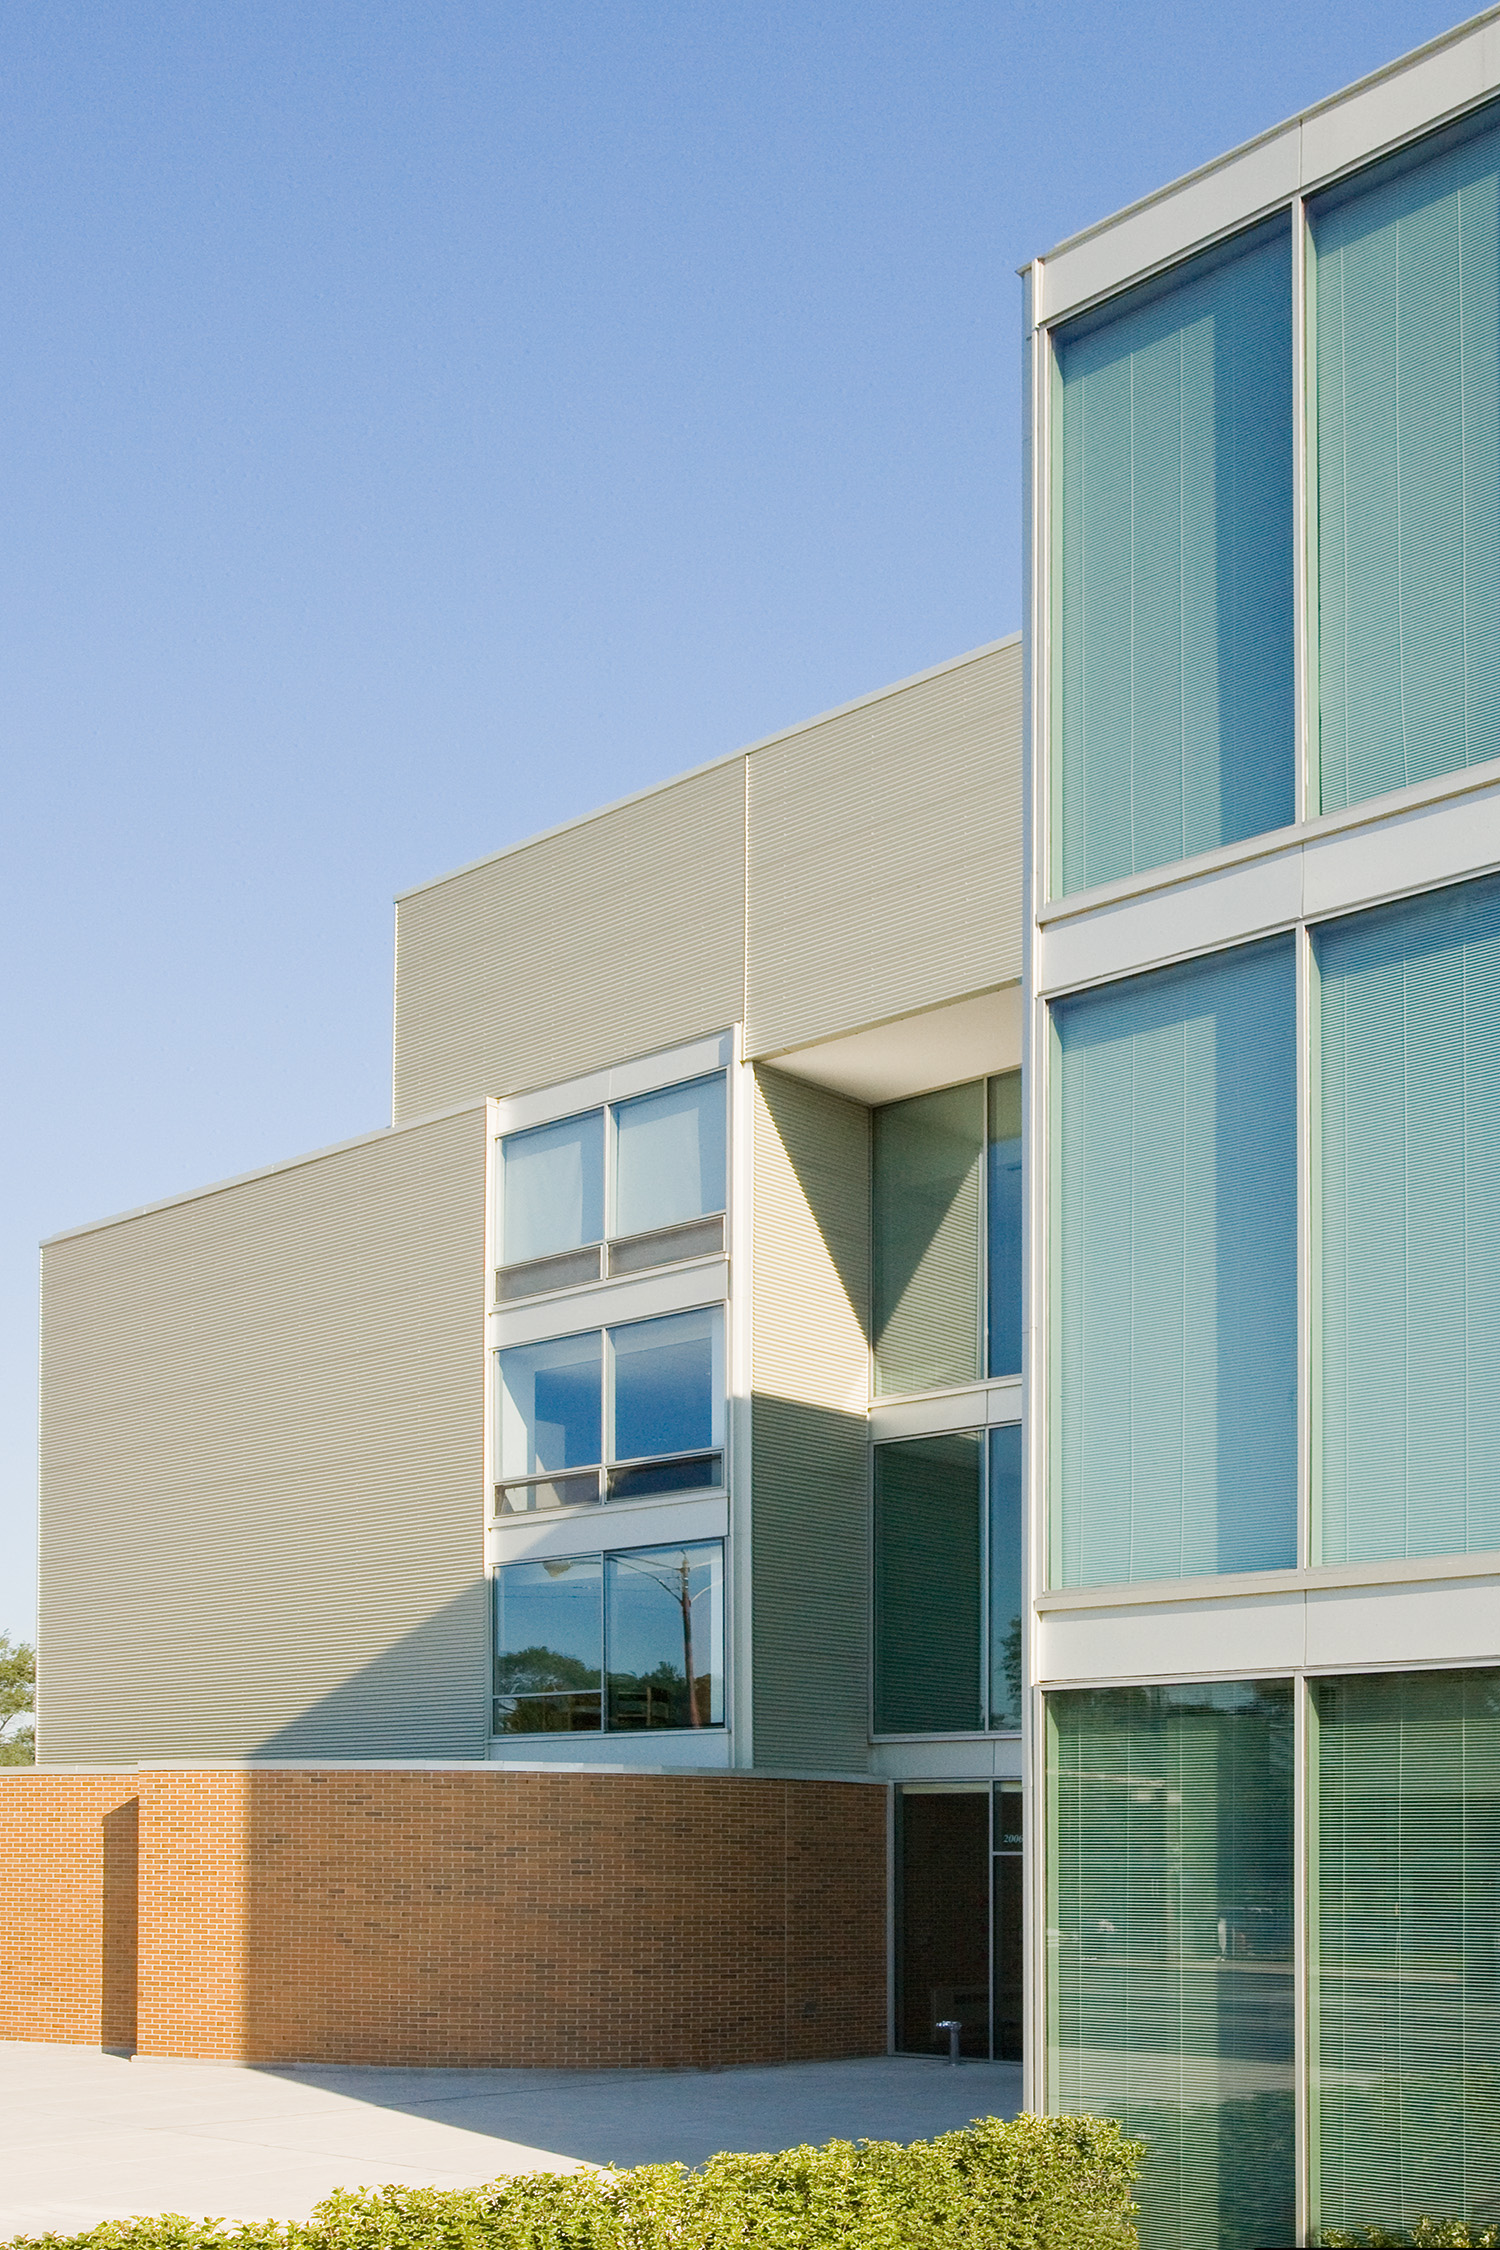 Chicago Christian Industrial League / Chicago IL / Krueck & Sexton Architects